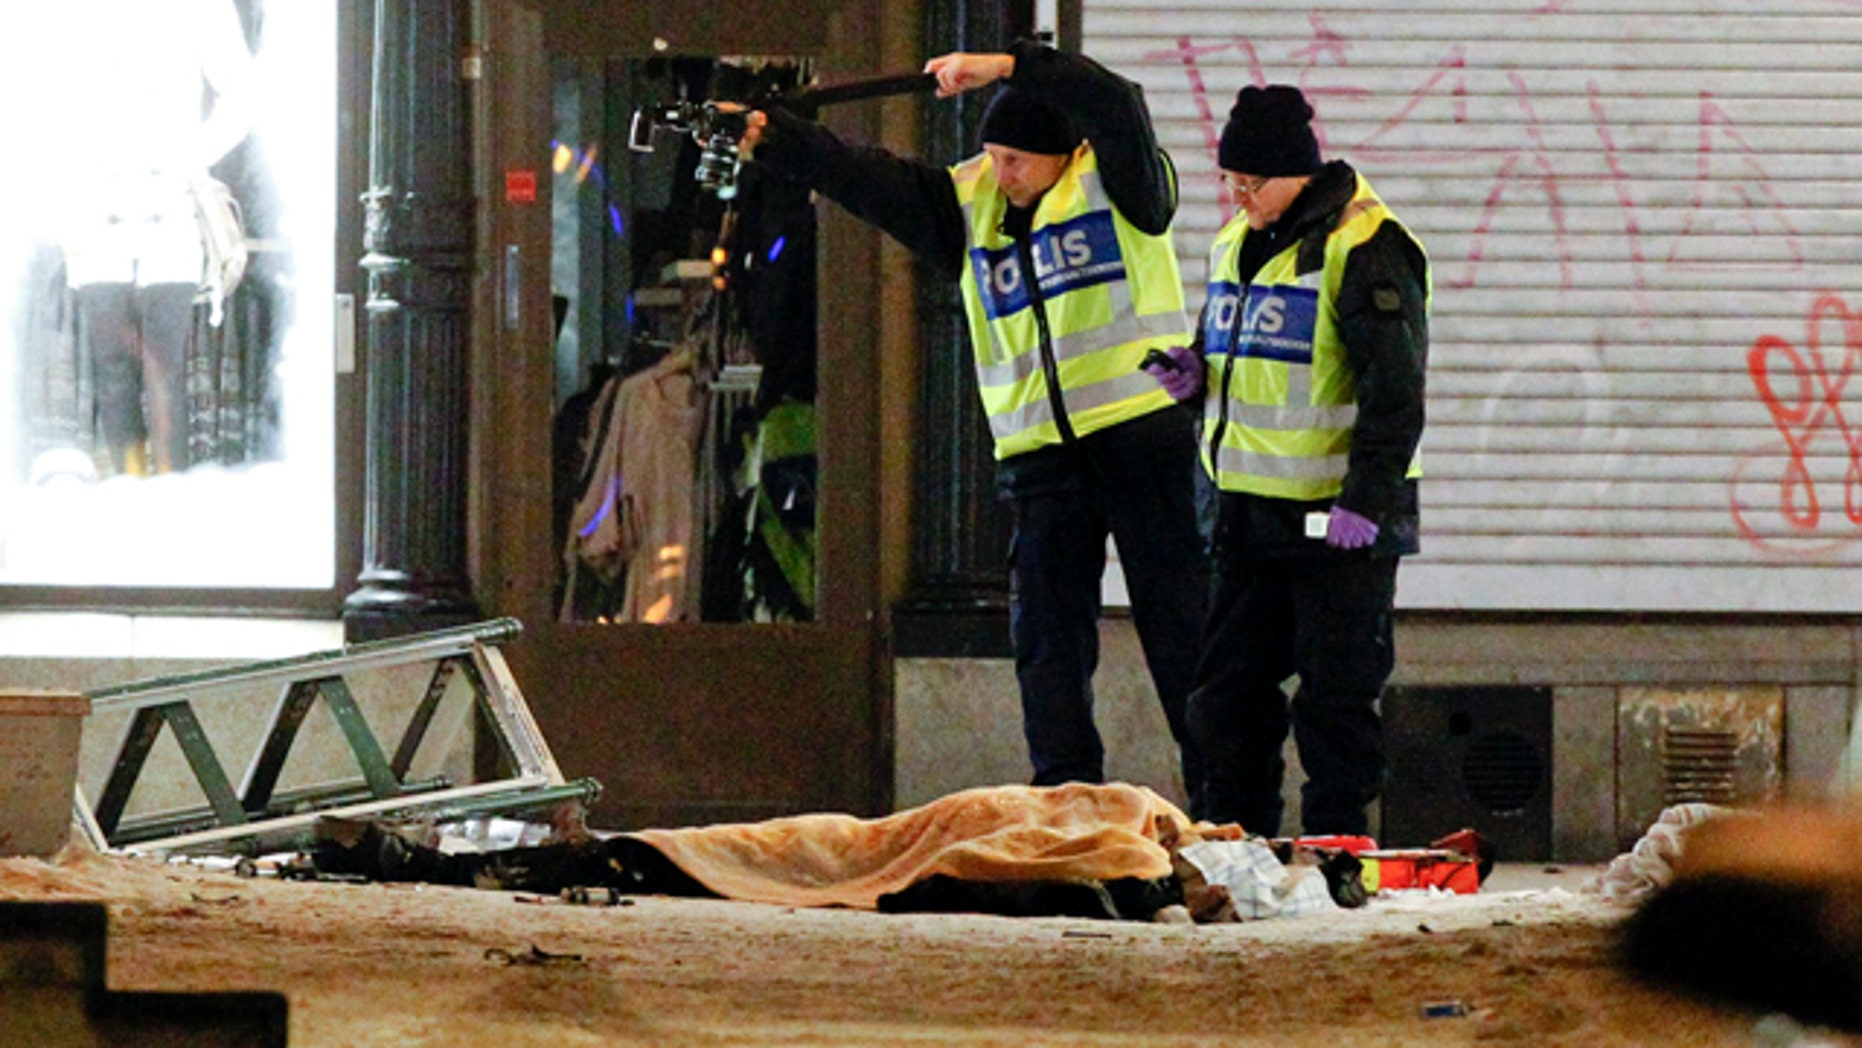 Police forensics experts examine the scene in Stockholm after an apparent suicide attack